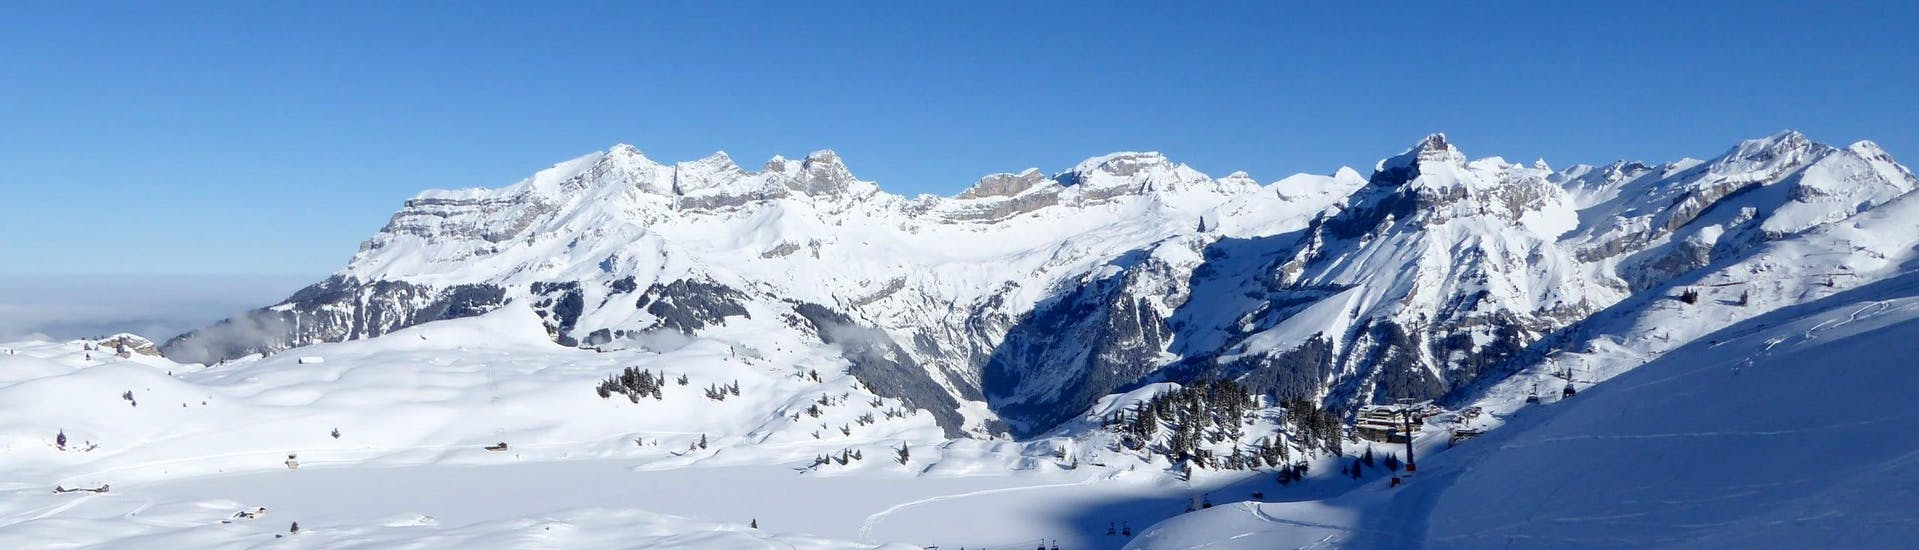 View over the sunny mountain landscape while learning to ski with the ski schools in Engelberg.